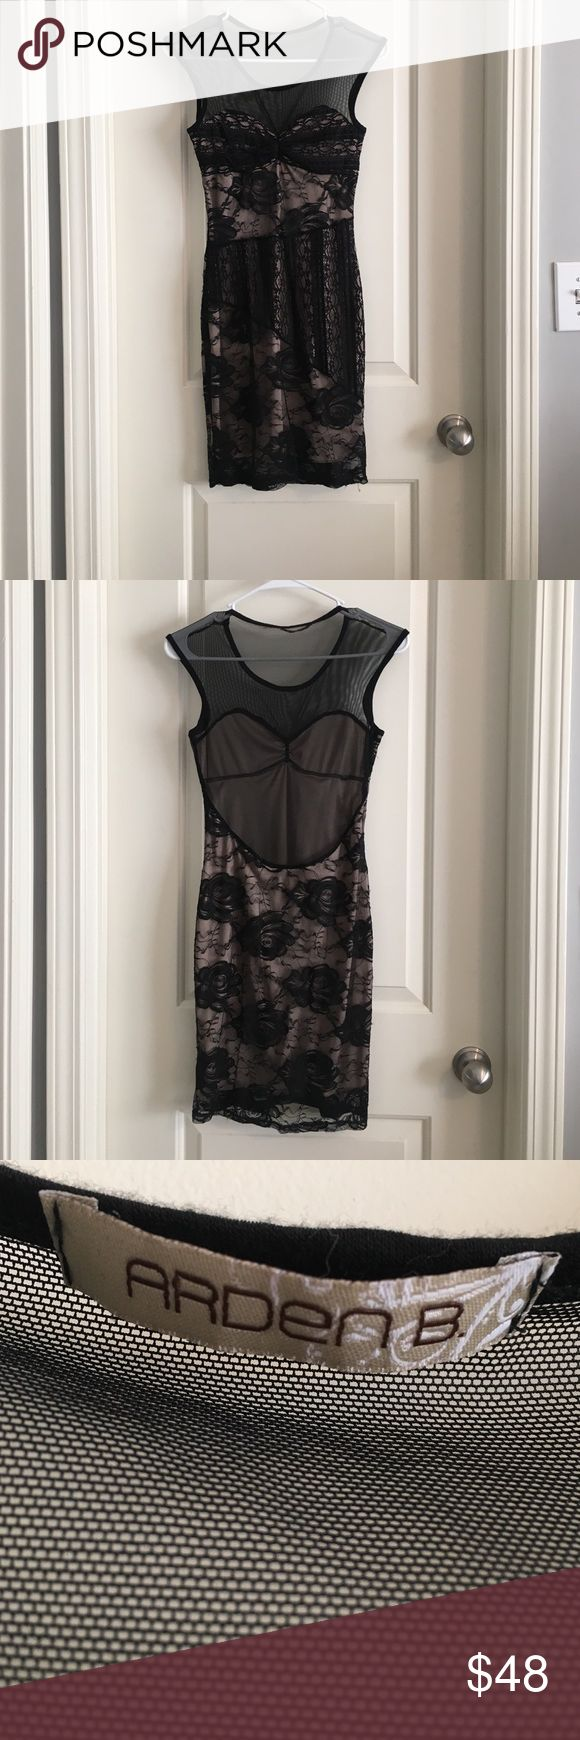 Little black lace dress Lace dress, see through shoulders and back. Worn once. Arden B Dresses Mini